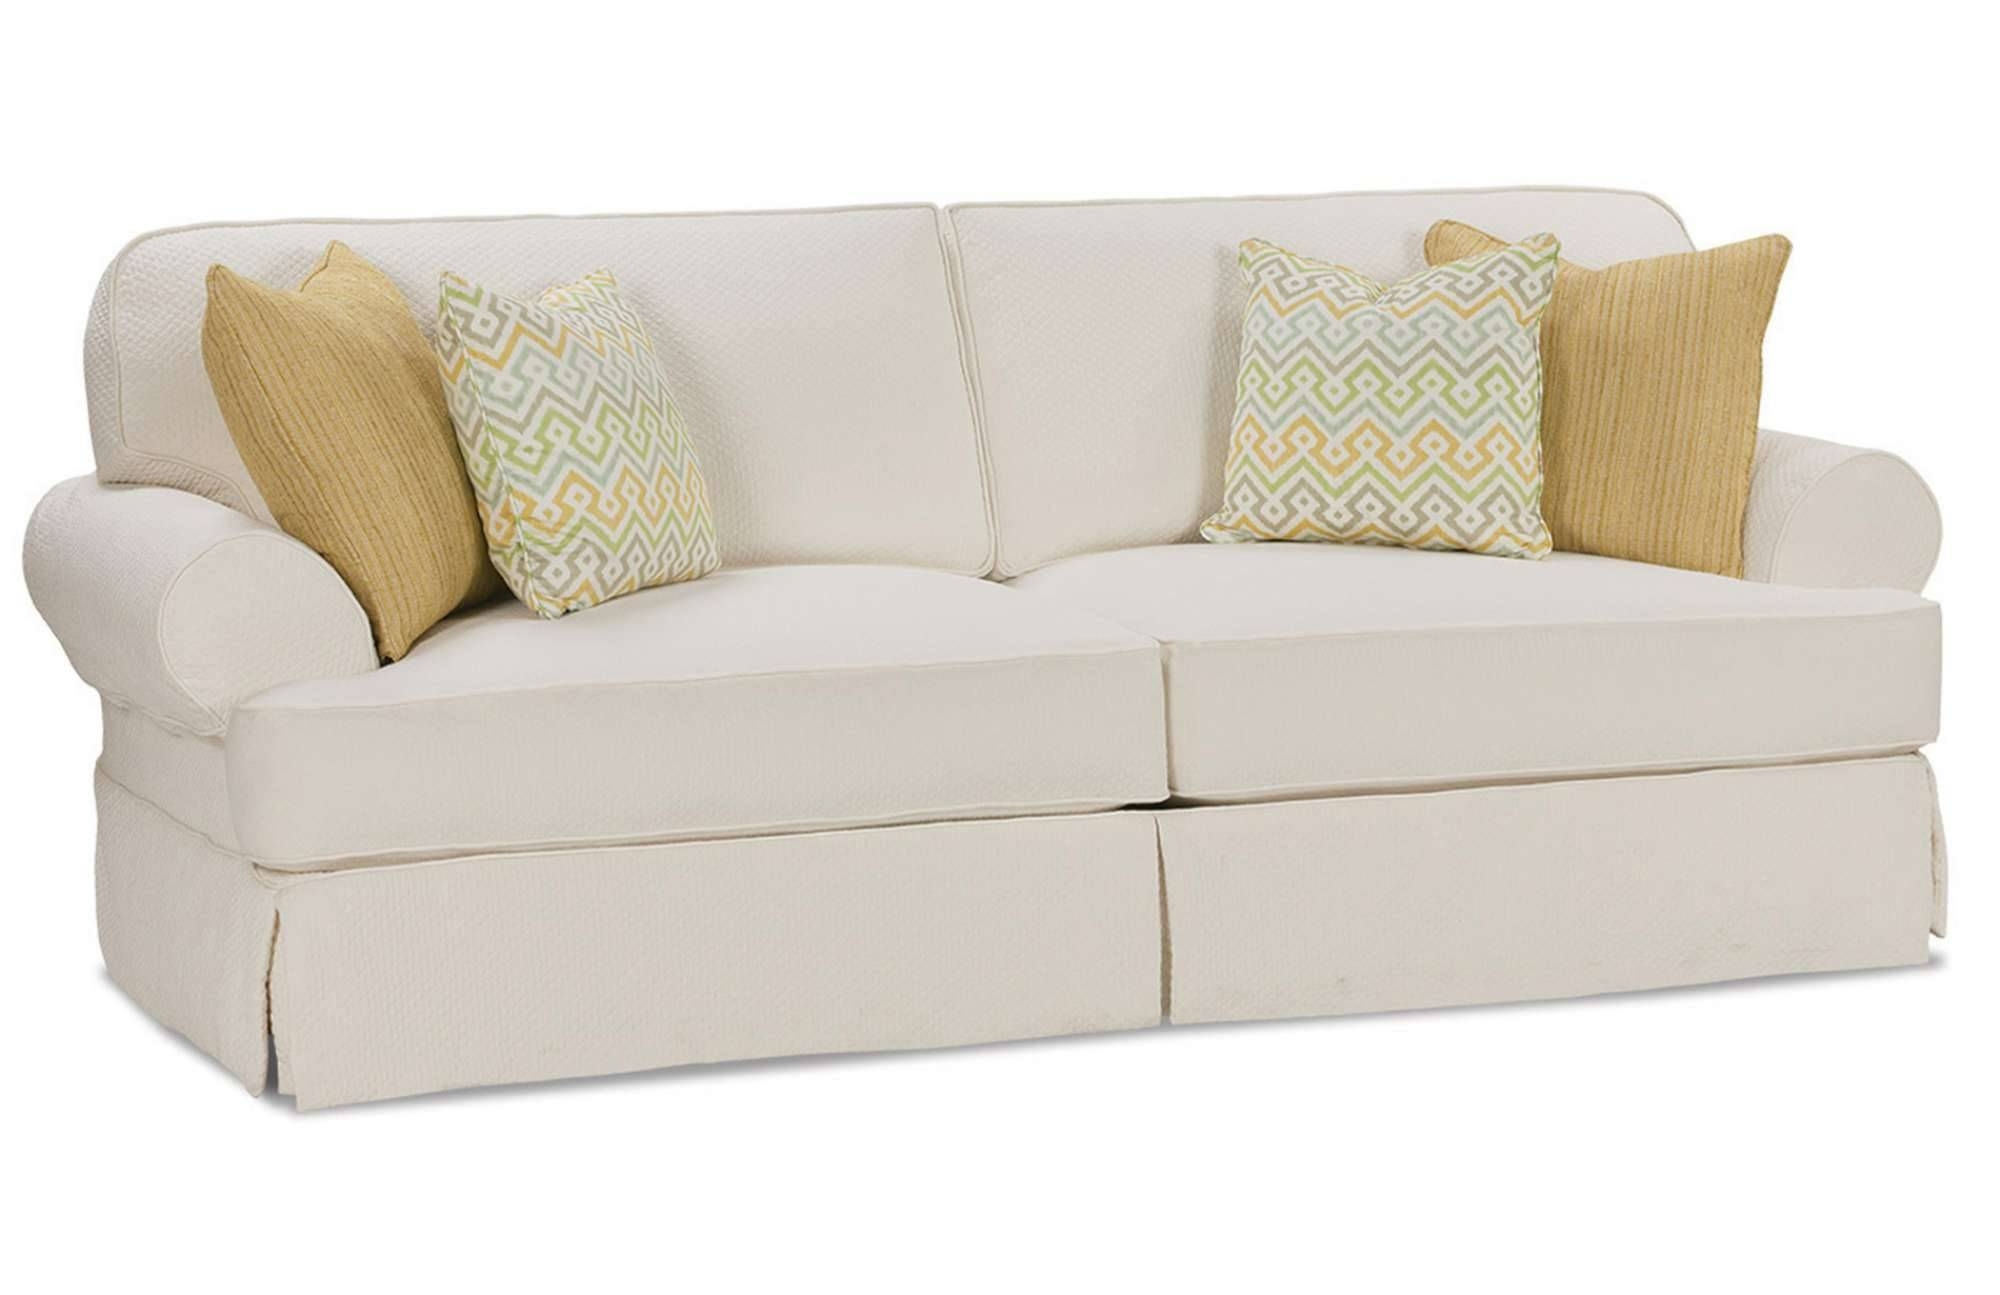 Chair & Sofa: Usual Slipcovered Sofas For Classic Sofa Idea throughout Sofa With Washable Covers (Image 1 of 30)